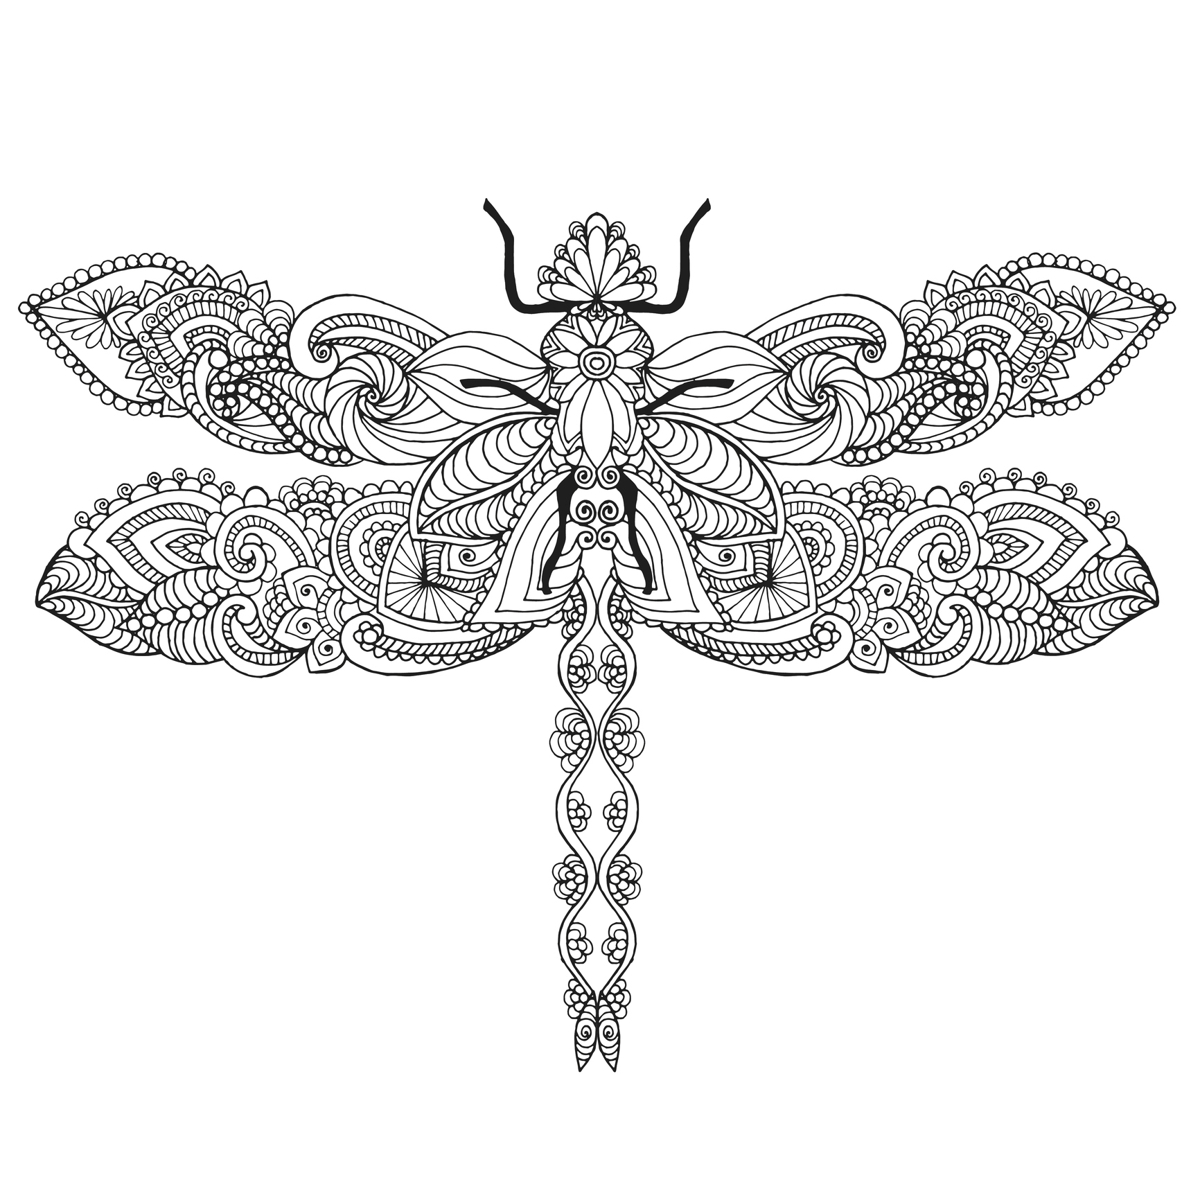 Dragonfly Line Drawing At Getdrawings Free For Personal Use